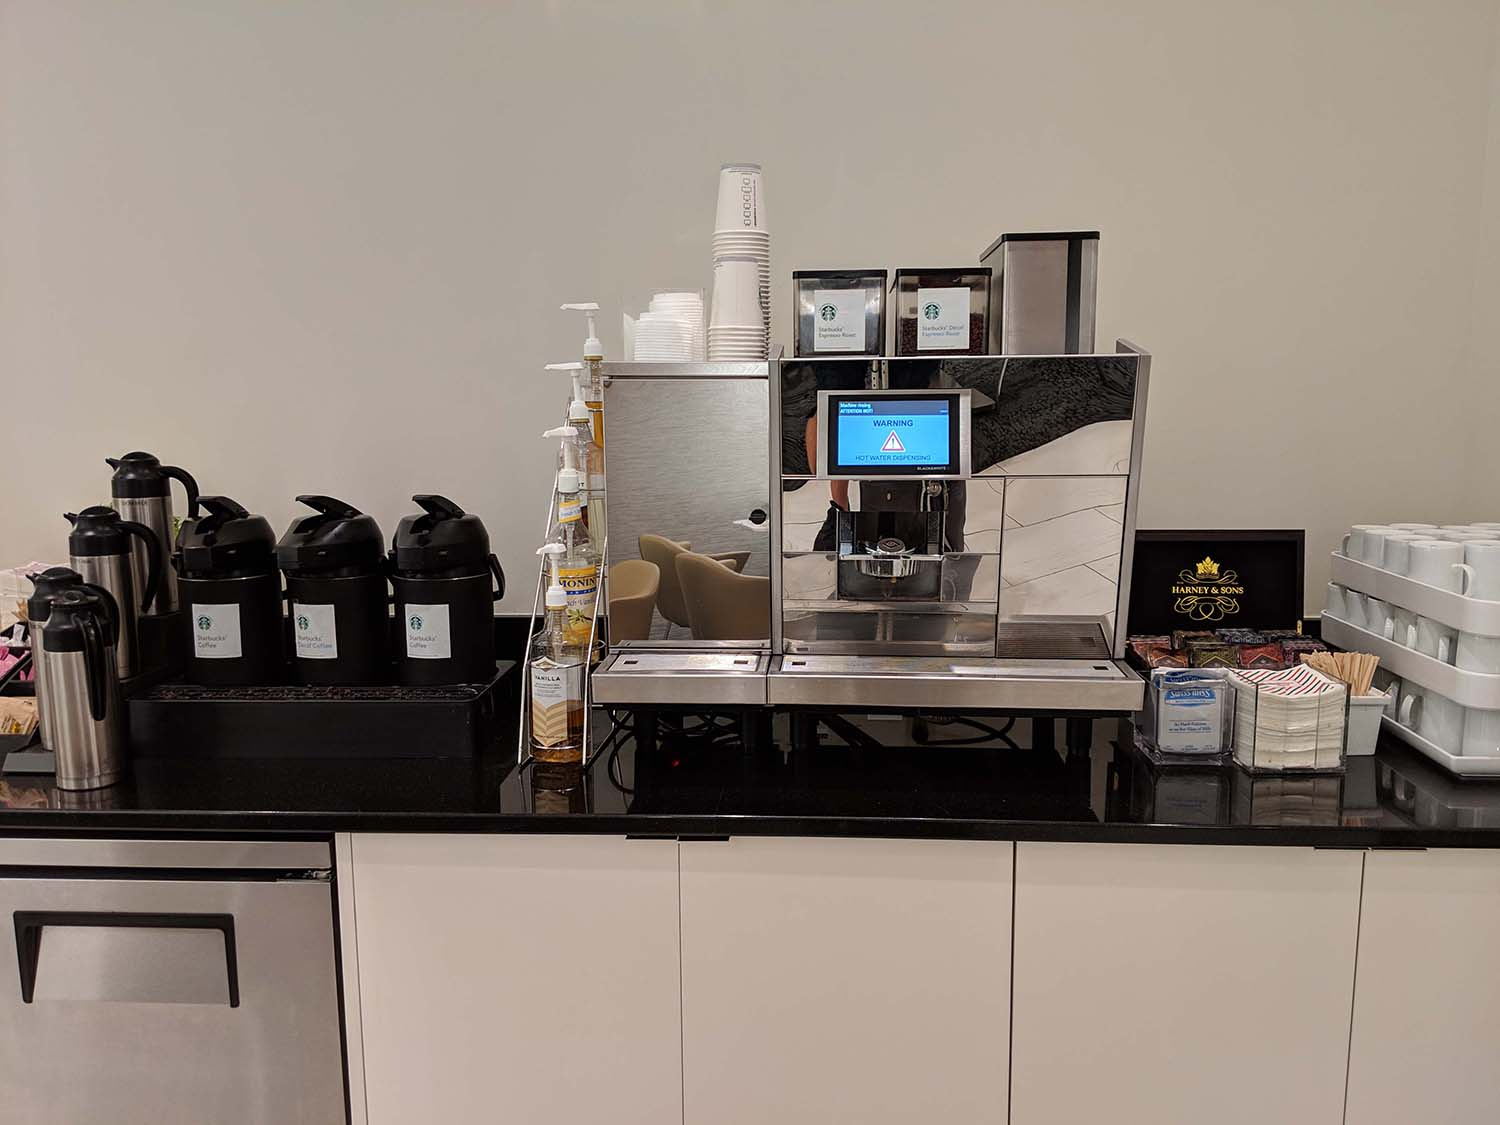 Delta Sky club in Fort lauderdale coffee and tea